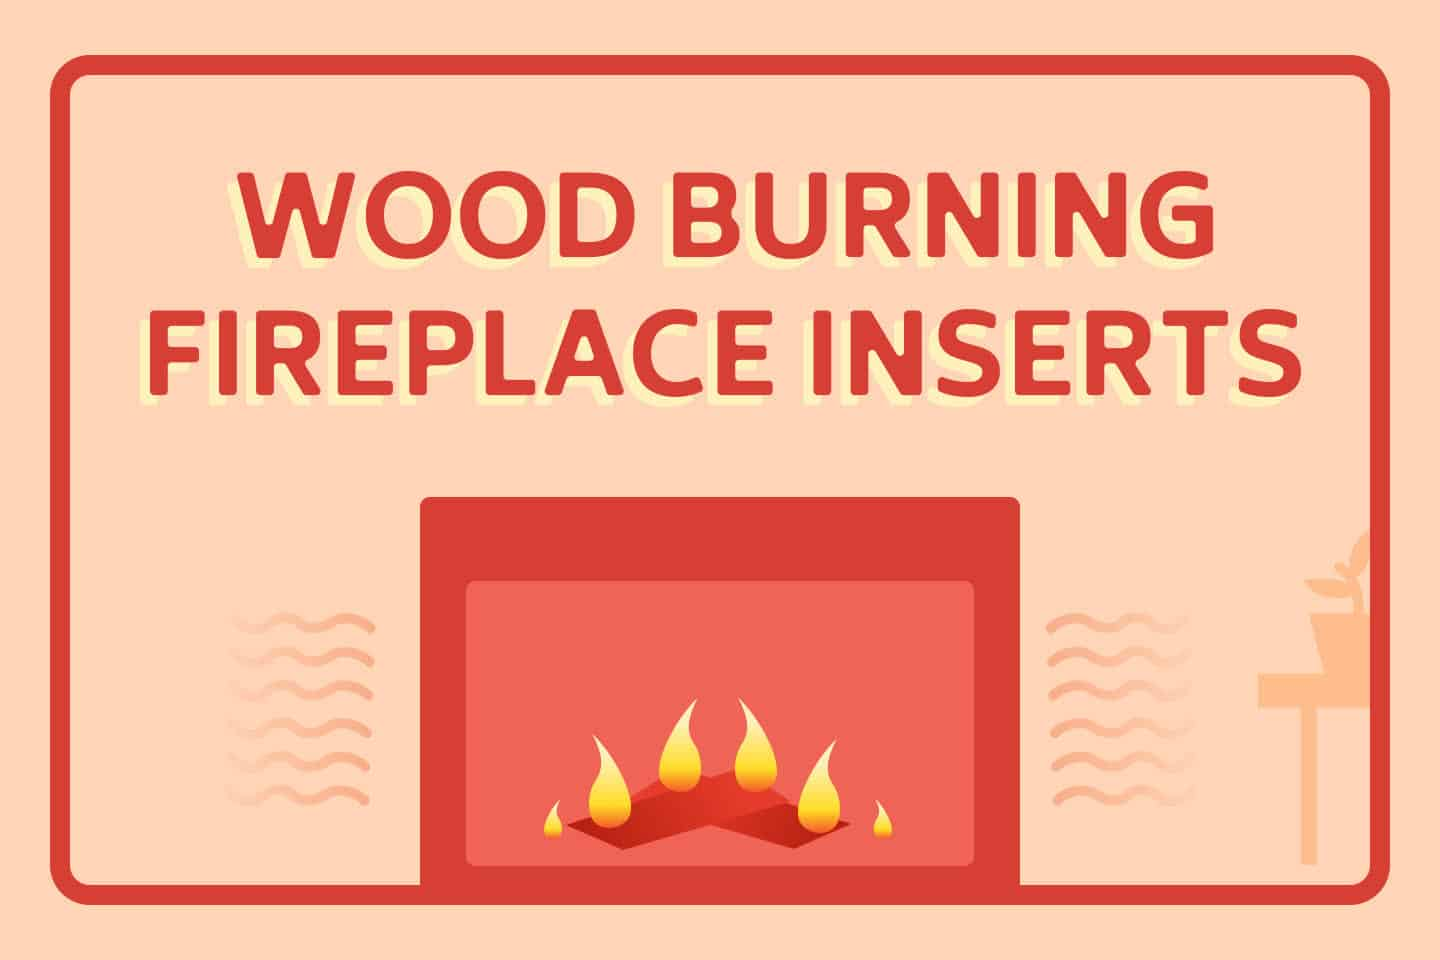 🔥 5 Best Wood Burning Fireplace Inserts – Full Buying Guide